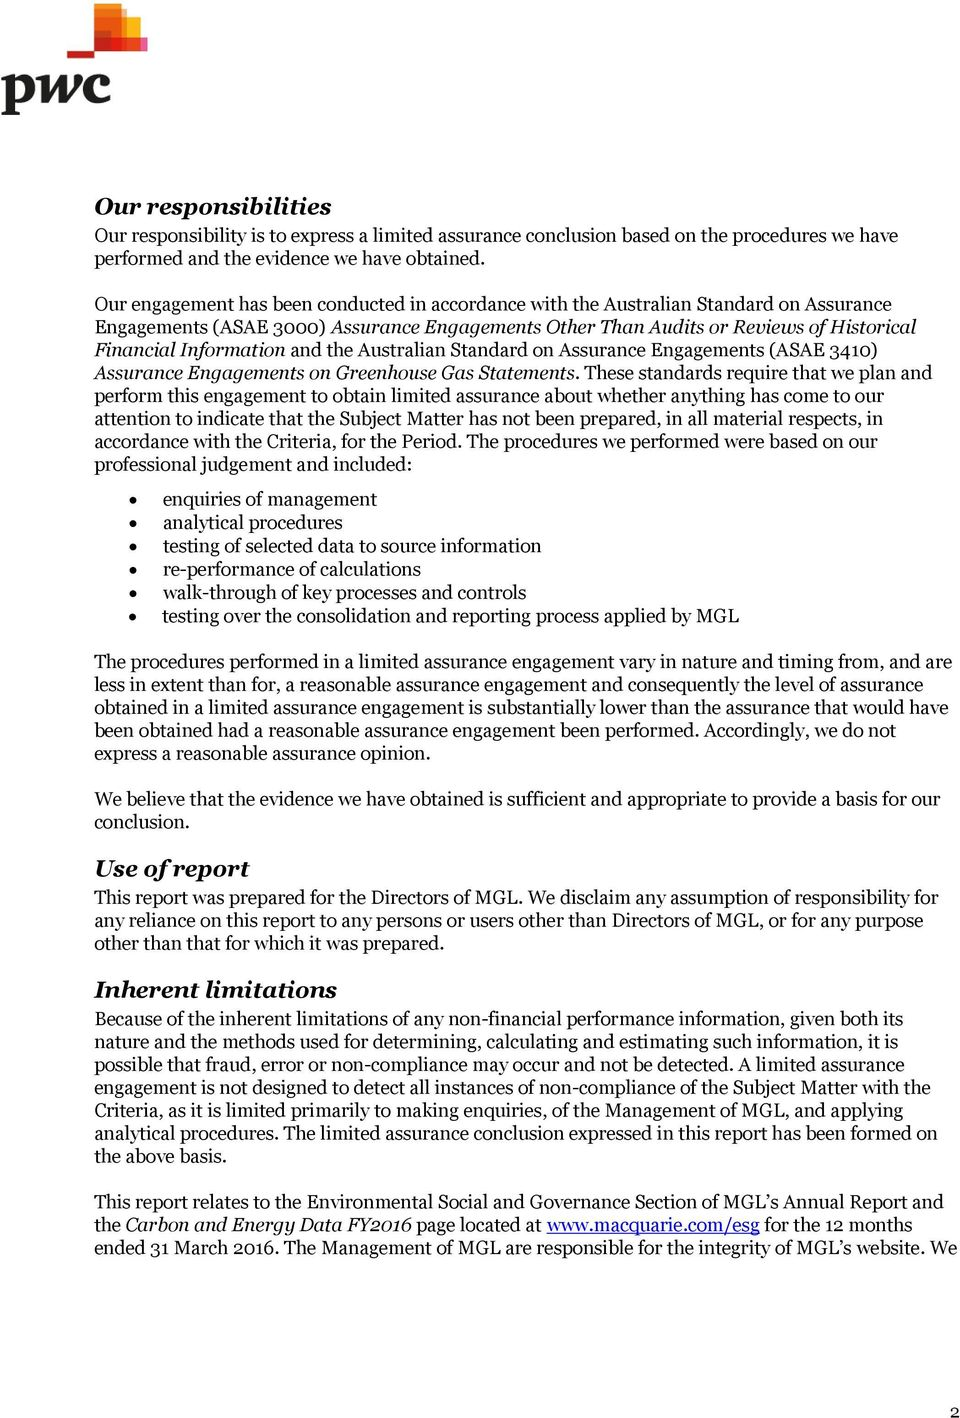 Information and the Australian Standard on Assurance Engagements (ASAE 3410) Assurance Engagements on Greenhouse Gas Statements.